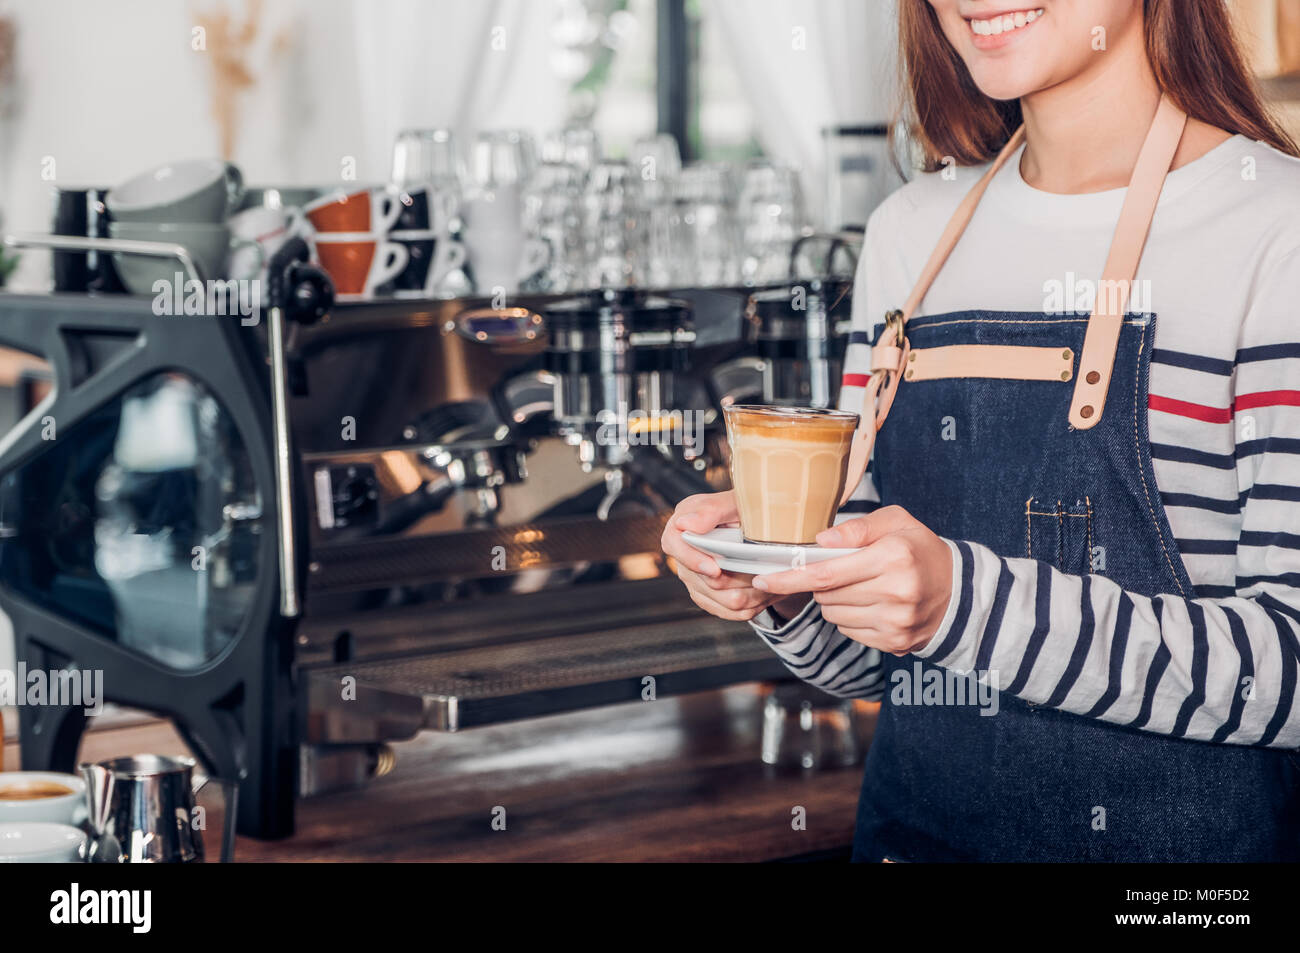 asia woman barista wear jean apron holding hot coffee cup served to customer with smiling face at bar counter,Cafe - Stock Image